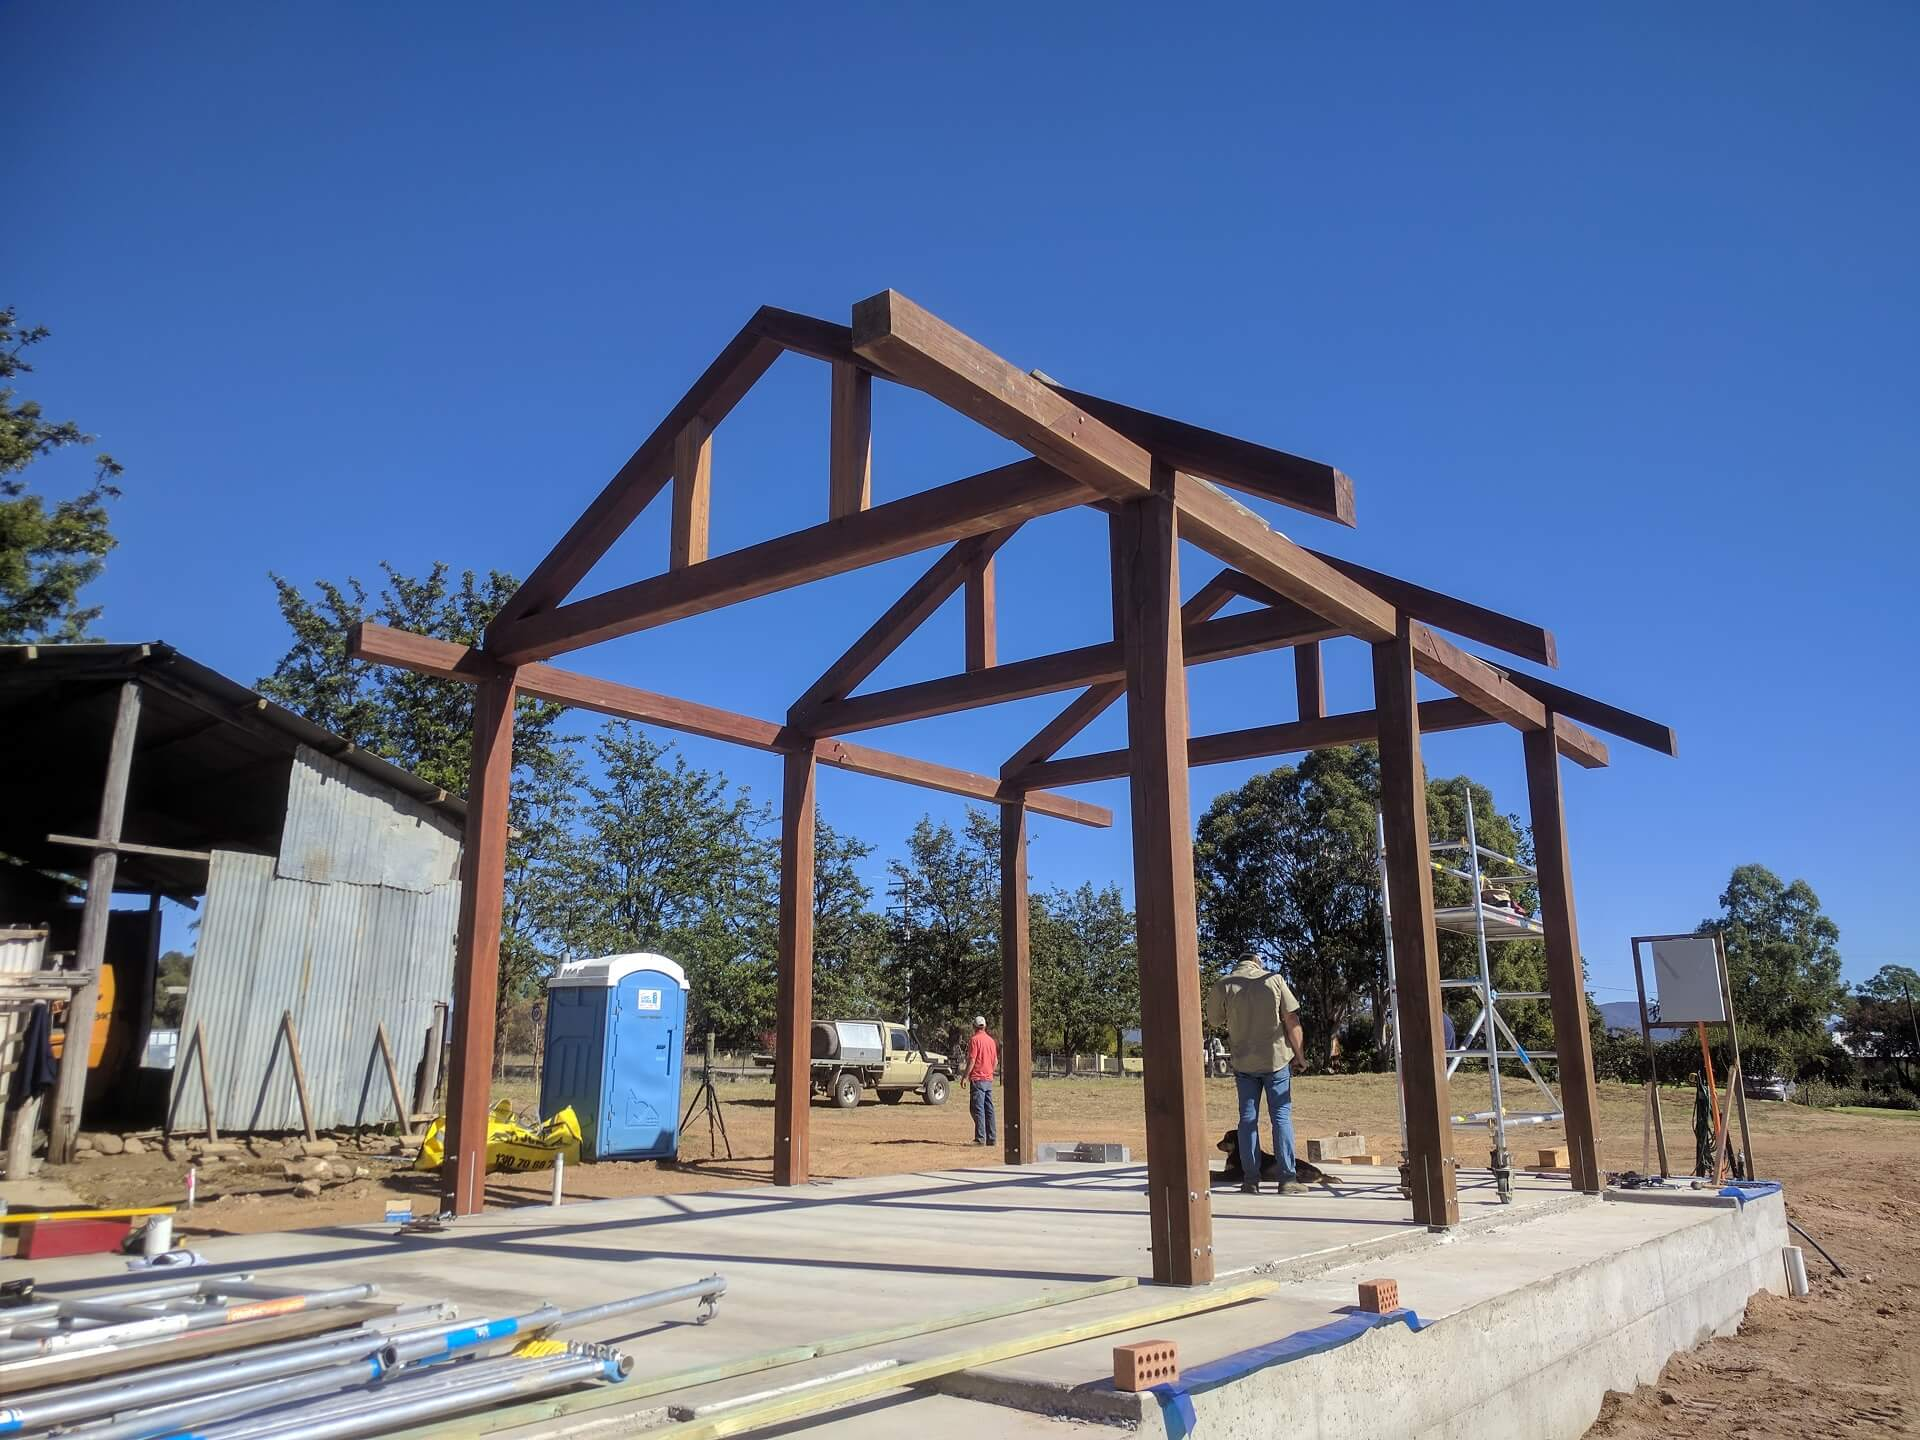 The Black Shed's architectual feature frame handcrafted from Australian hardwood